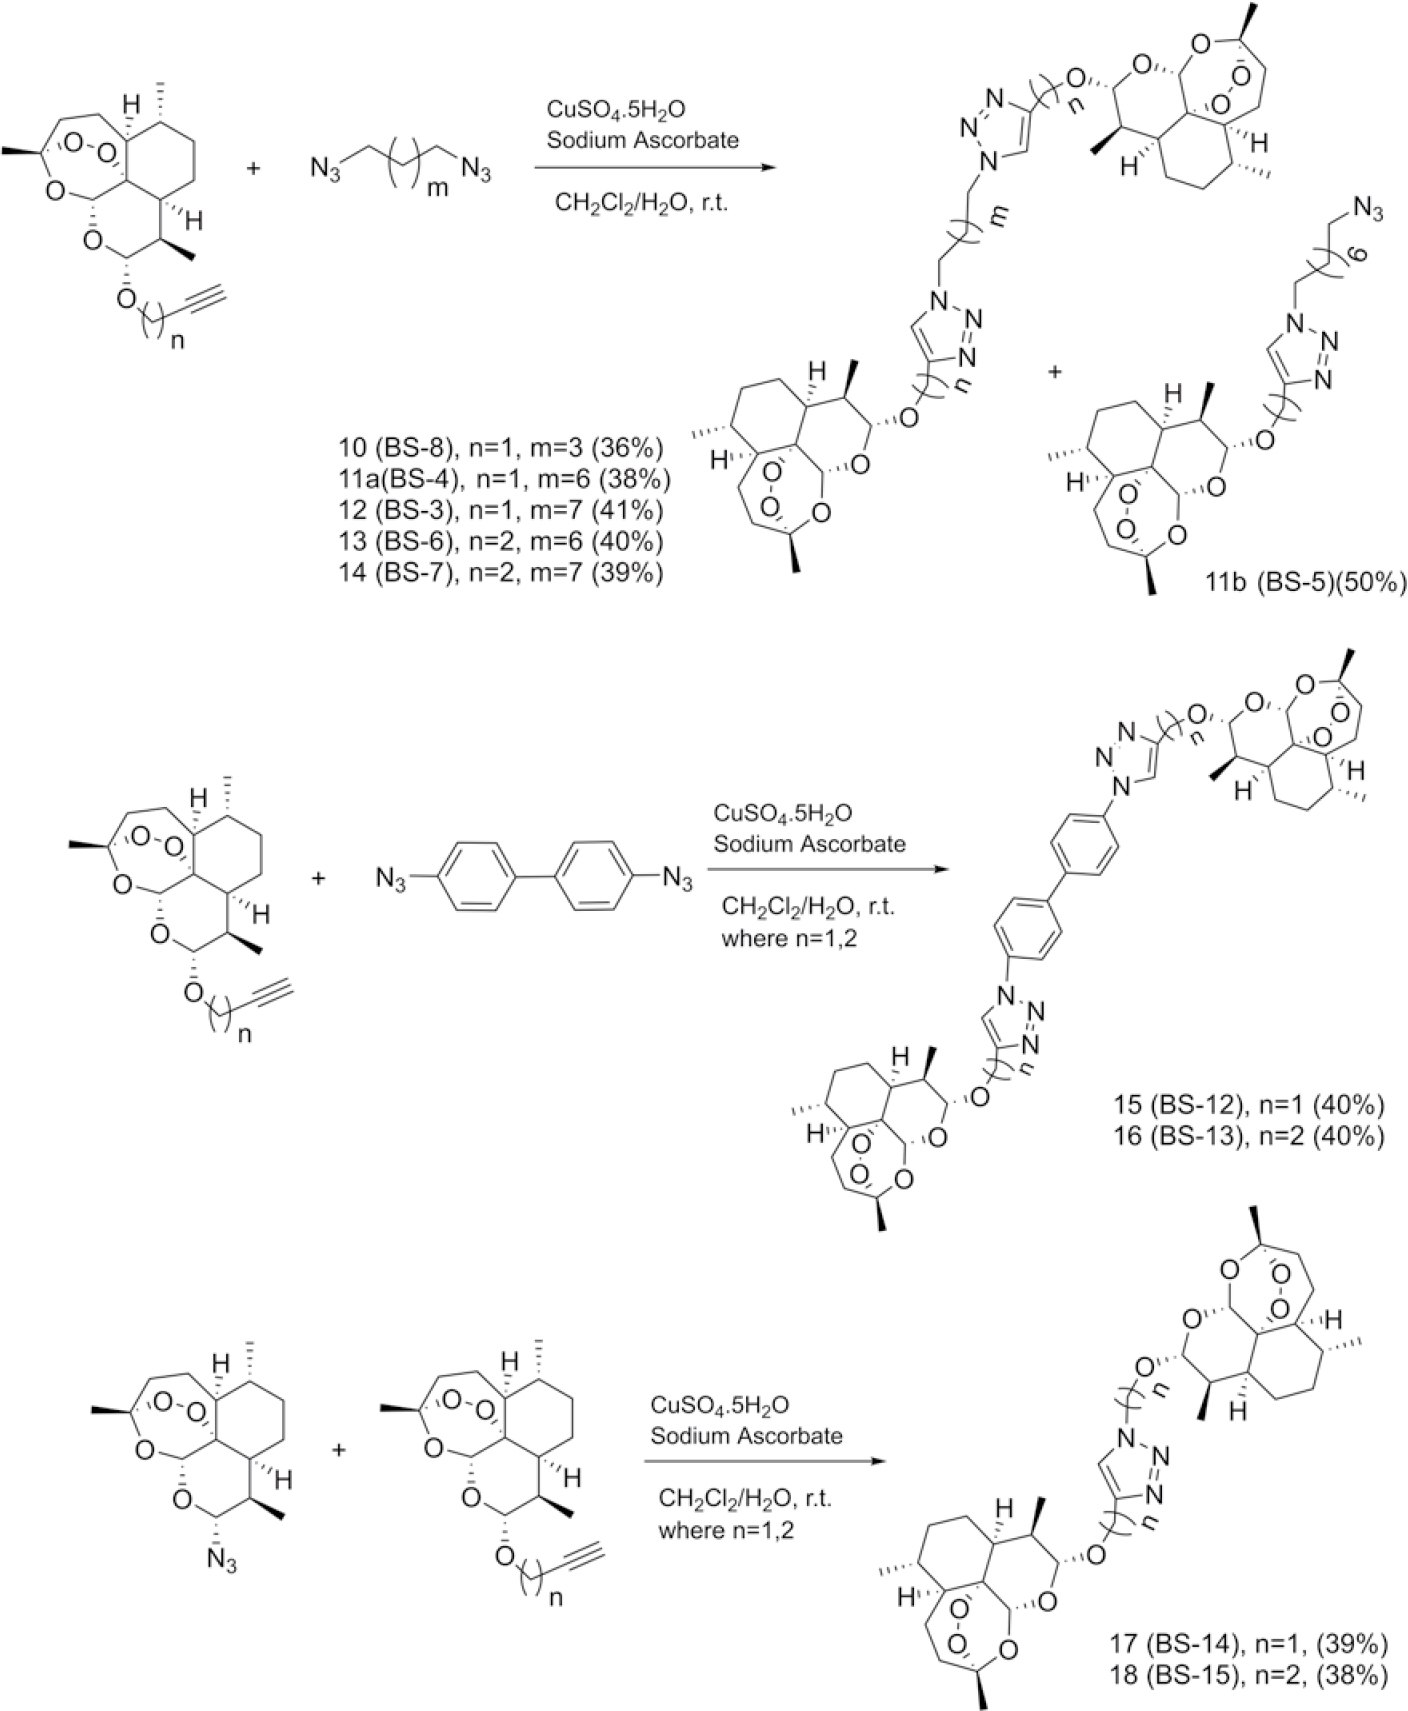 Figure 3: General synthetic scheme for artemisinin-derived dimers containing triazole moieties.